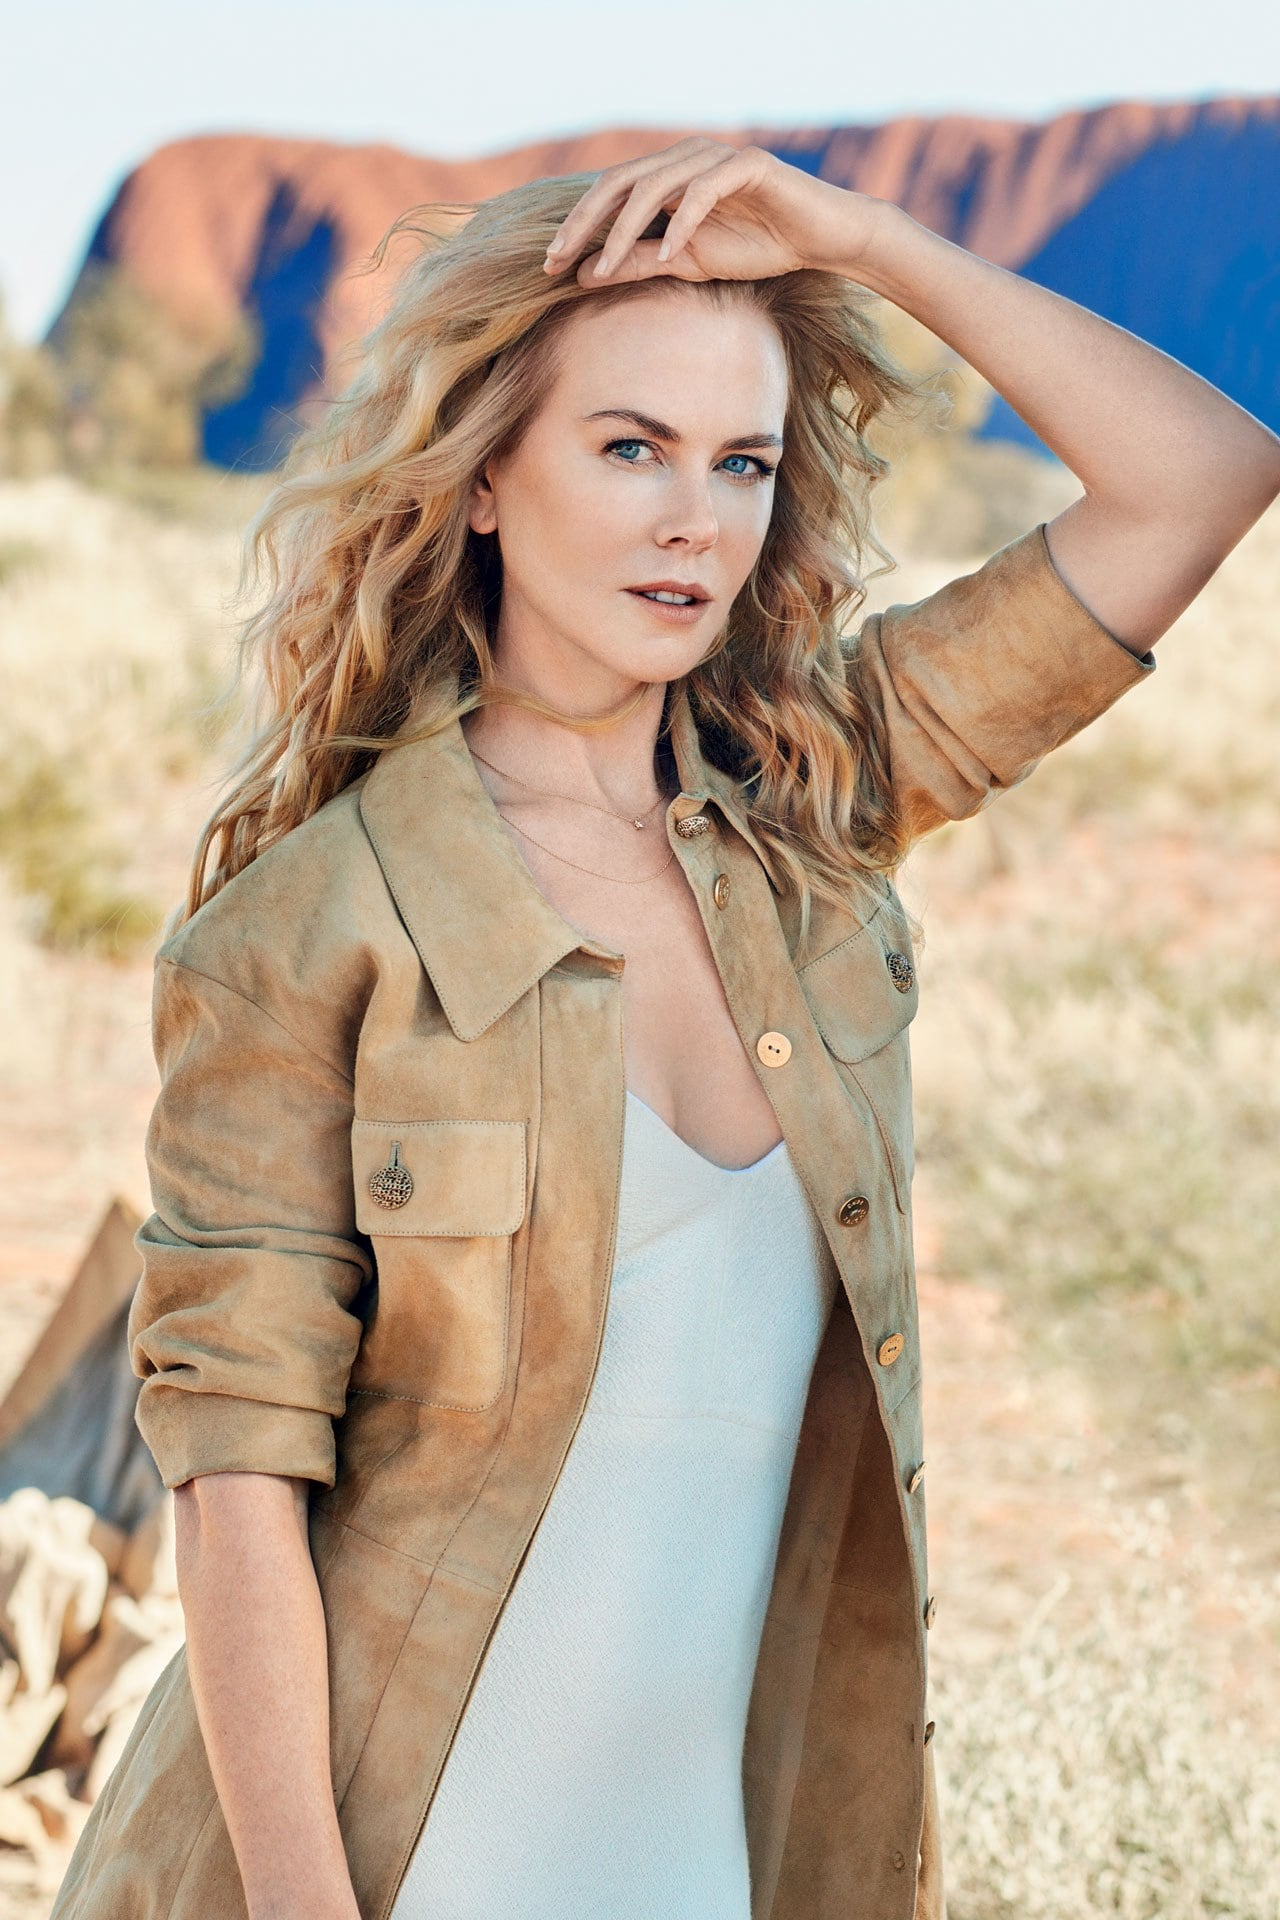 Nicole Kidman, actress and UN Women Goodwill Ambassador